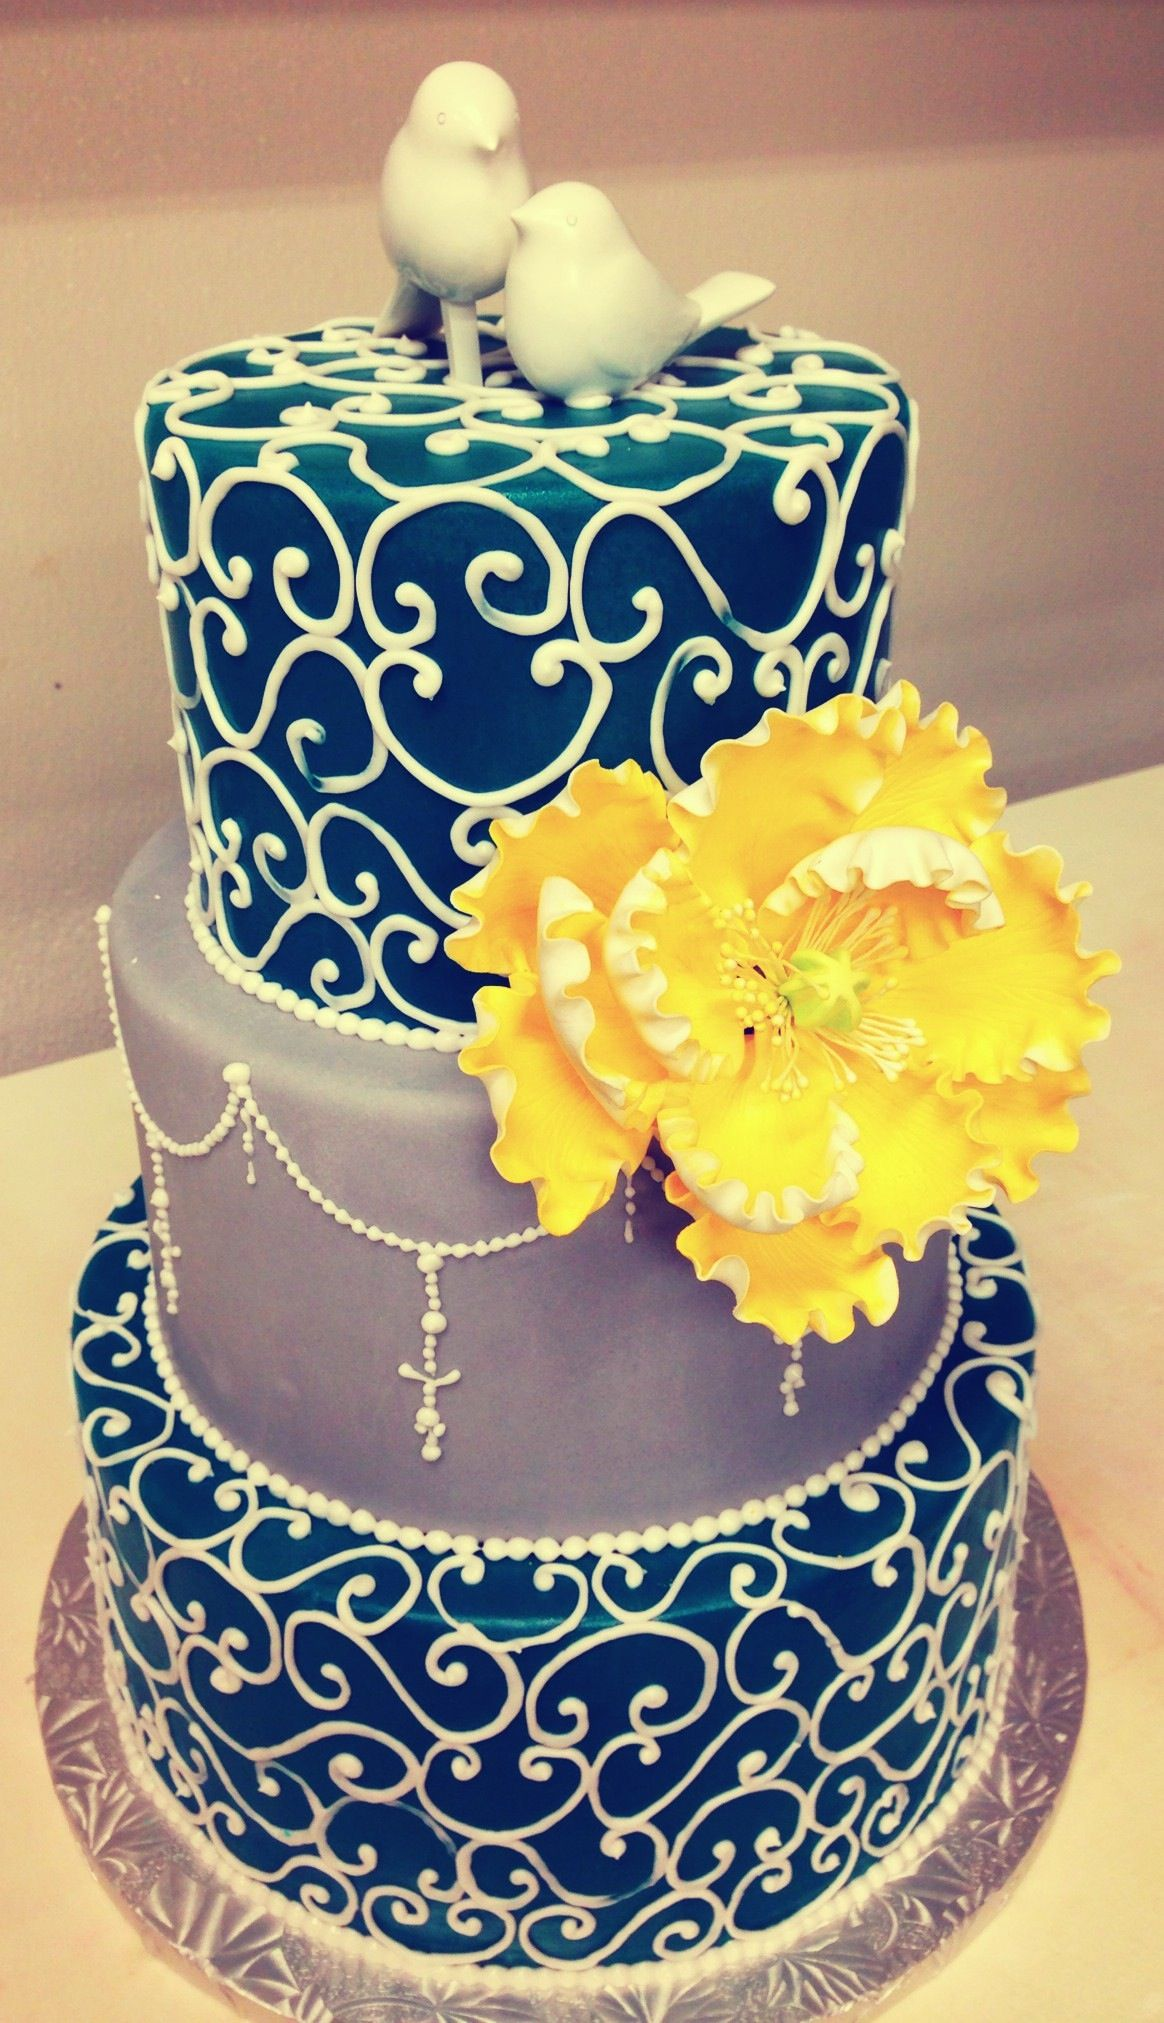 Teal grey and yellow | Wedding cakes | Pinterest | Wedding cake and ...